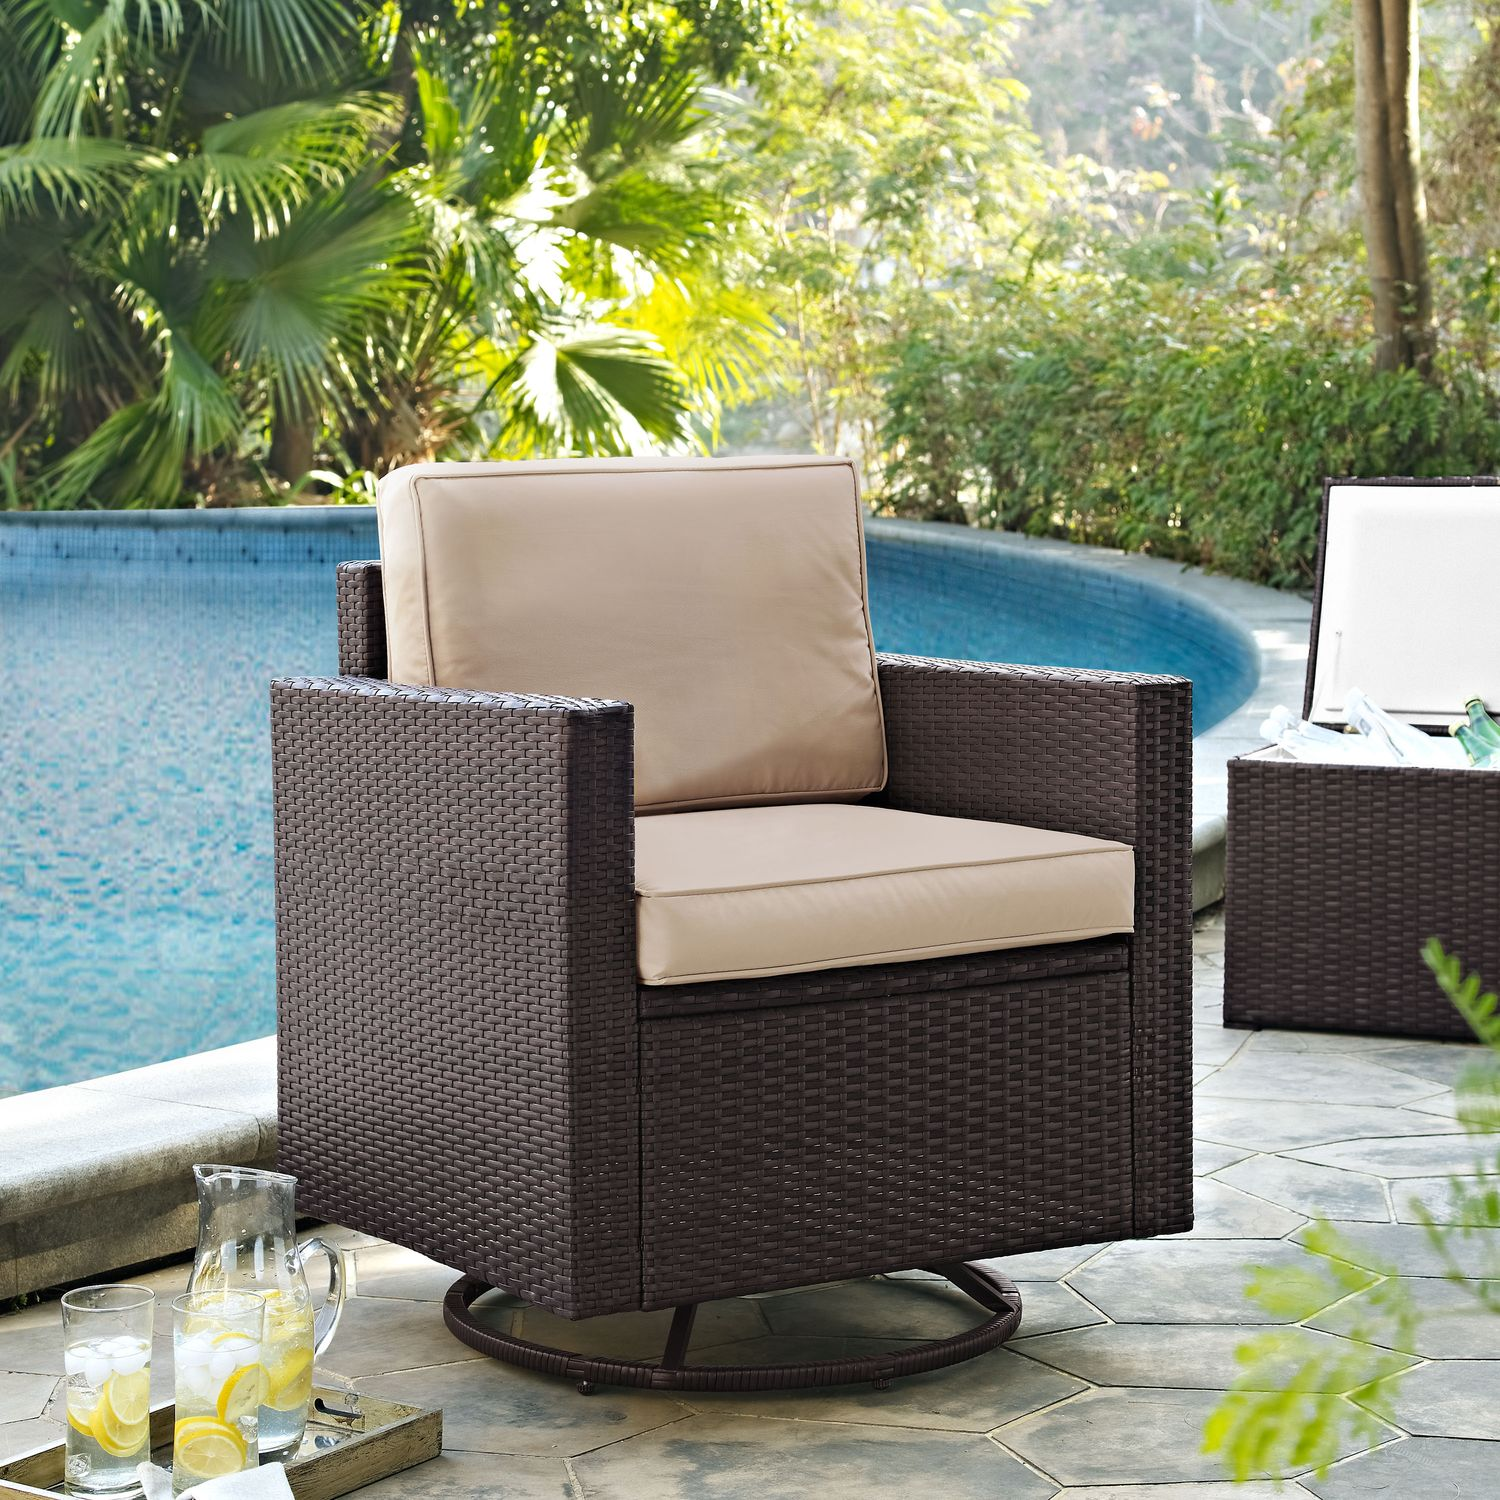 Outdoor Furniture - Aldo Outdoor Swivel Rocking Chair